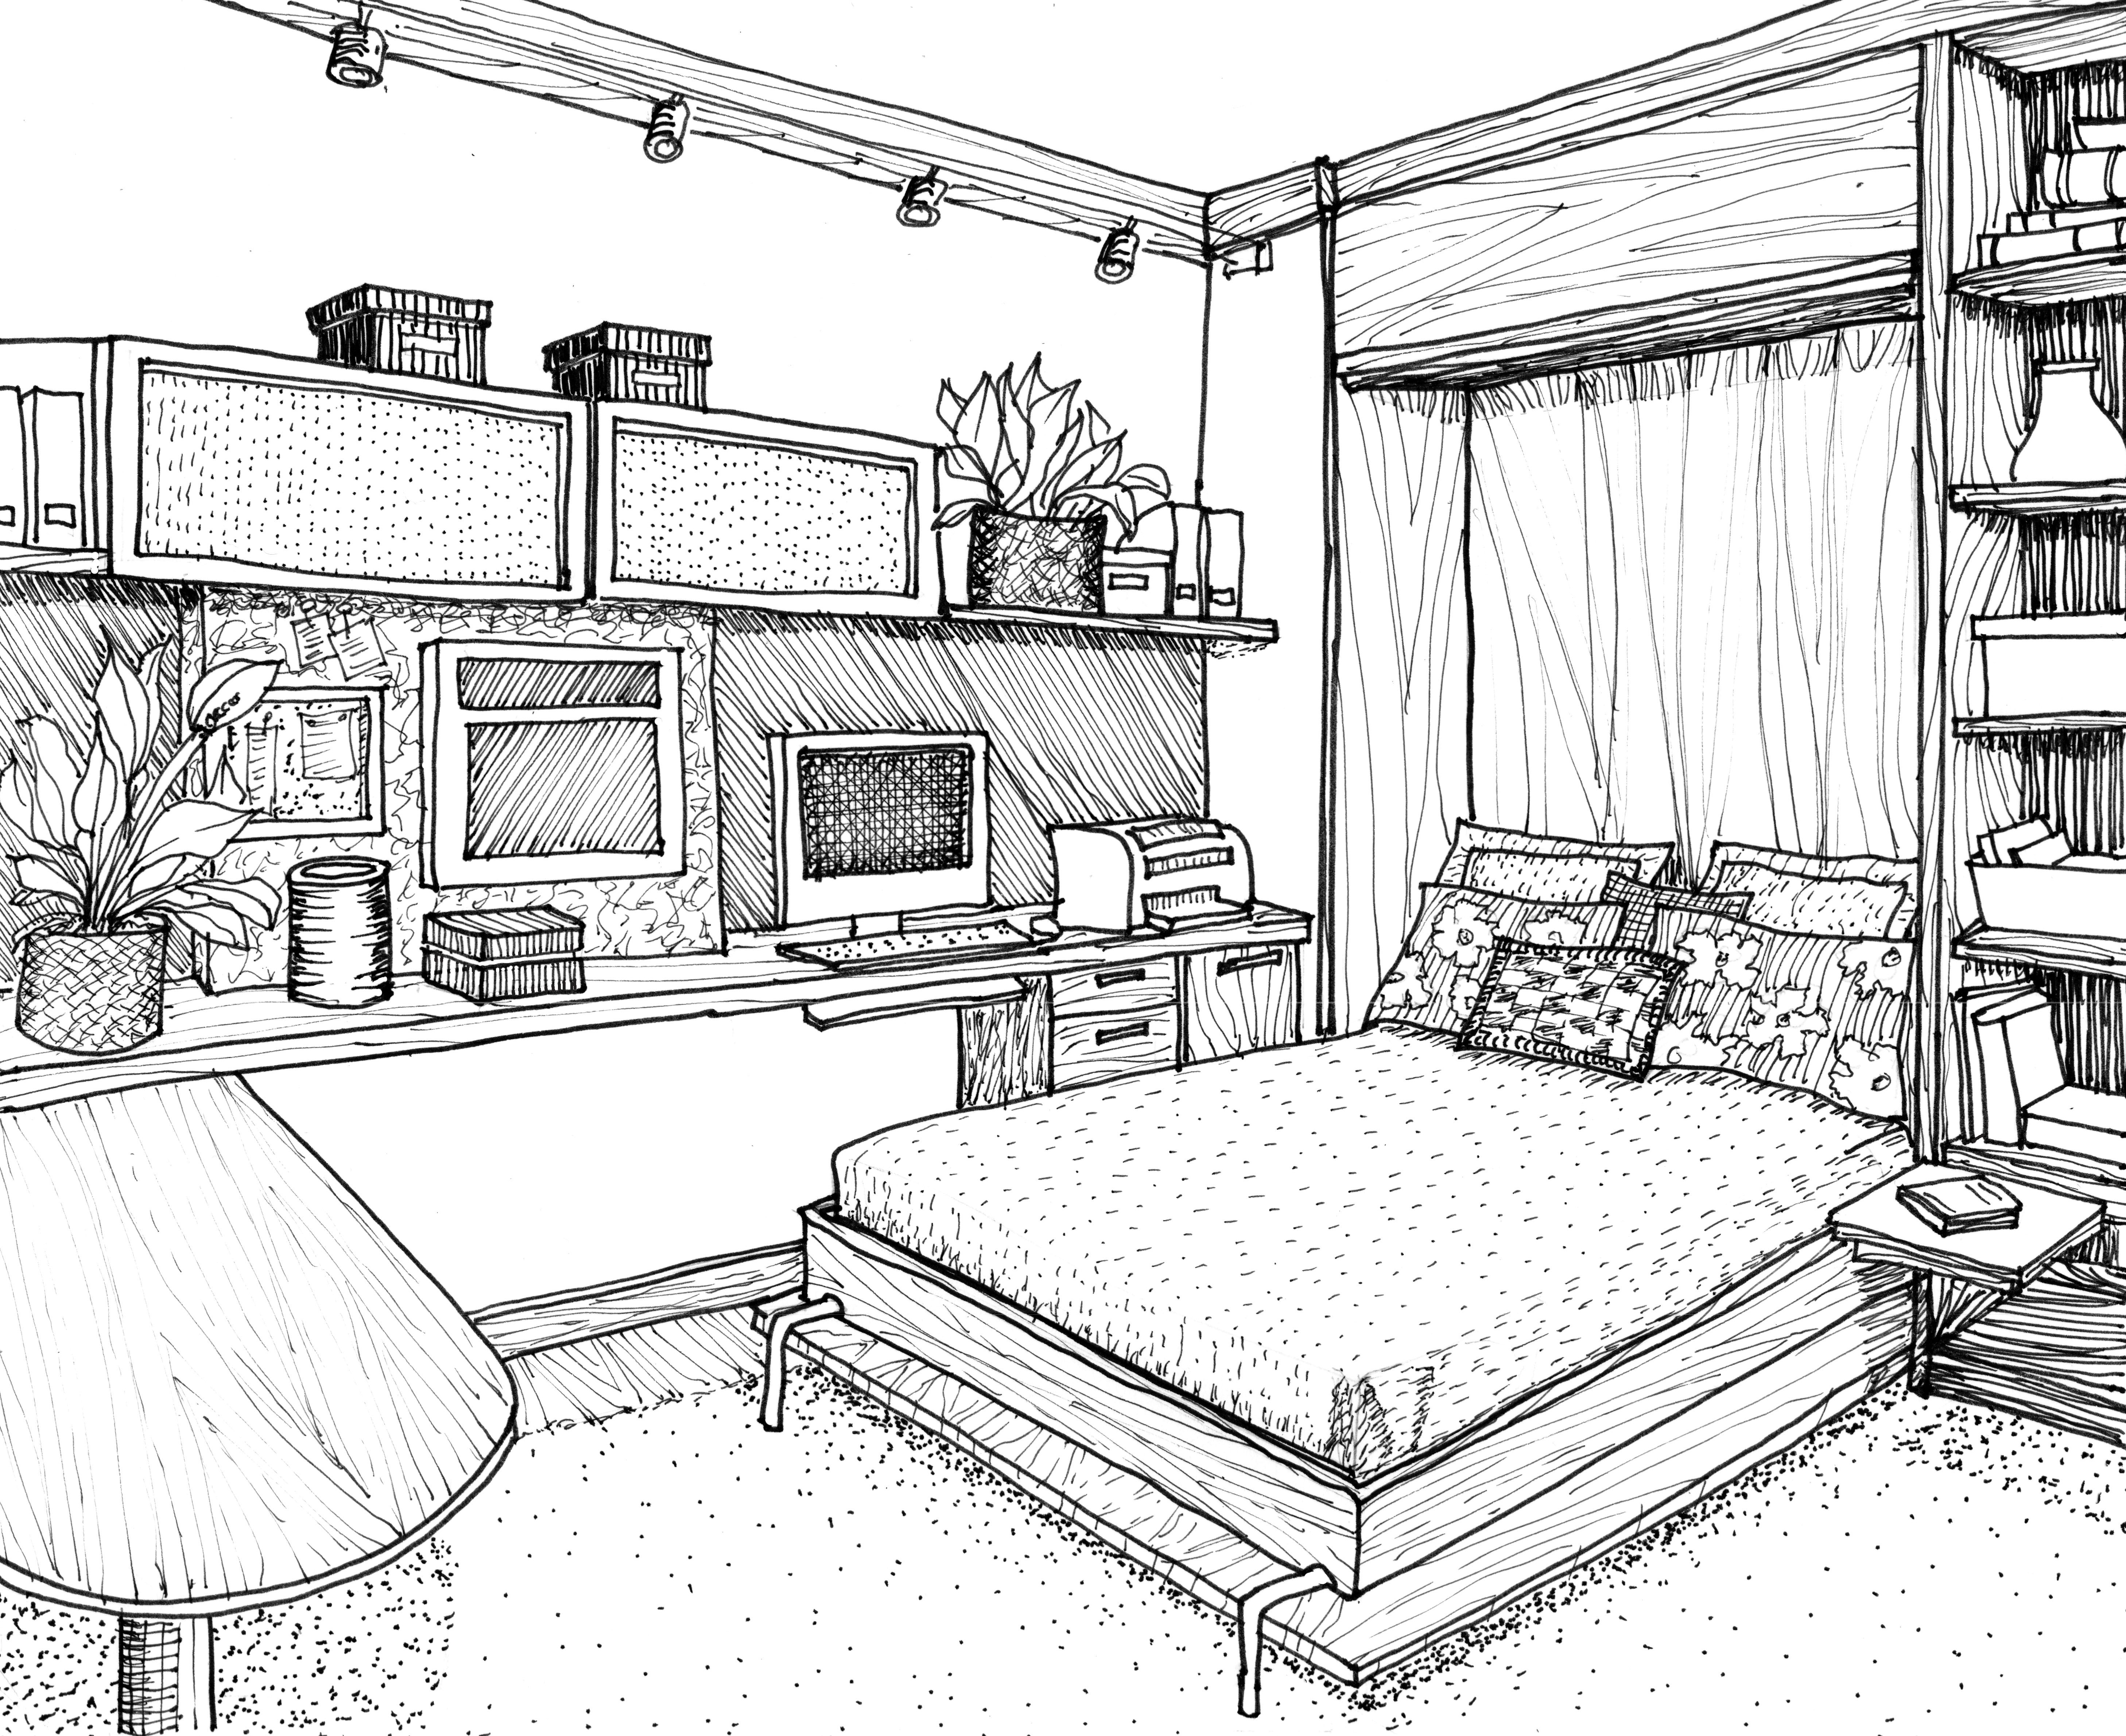 Bedroom interior design drawing drawings pinterest 2 bedroom interior design